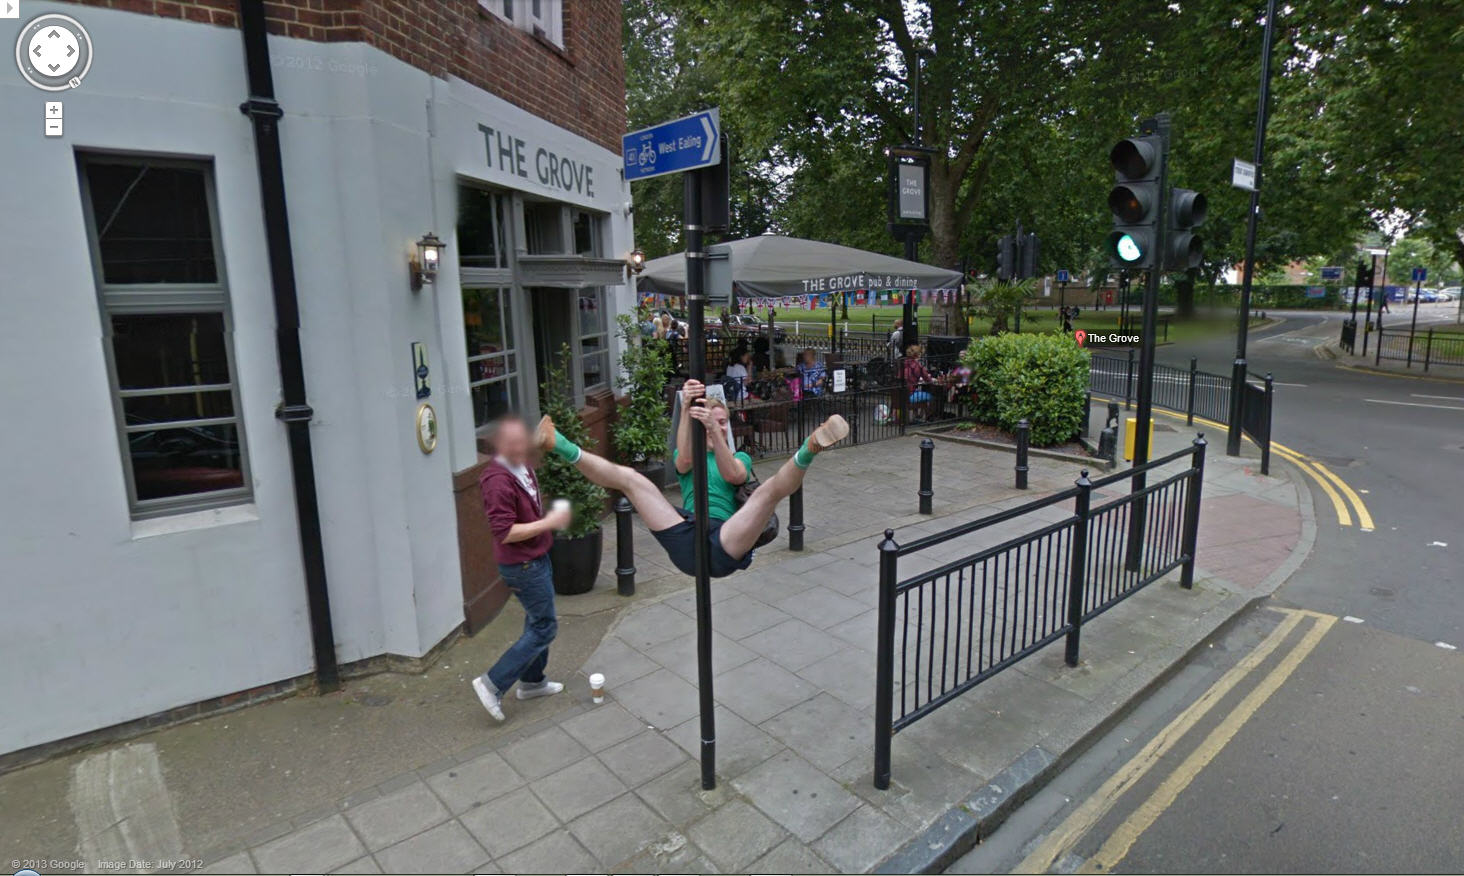 google street view pole dancer google street view world. Black Bedroom Furniture Sets. Home Design Ideas